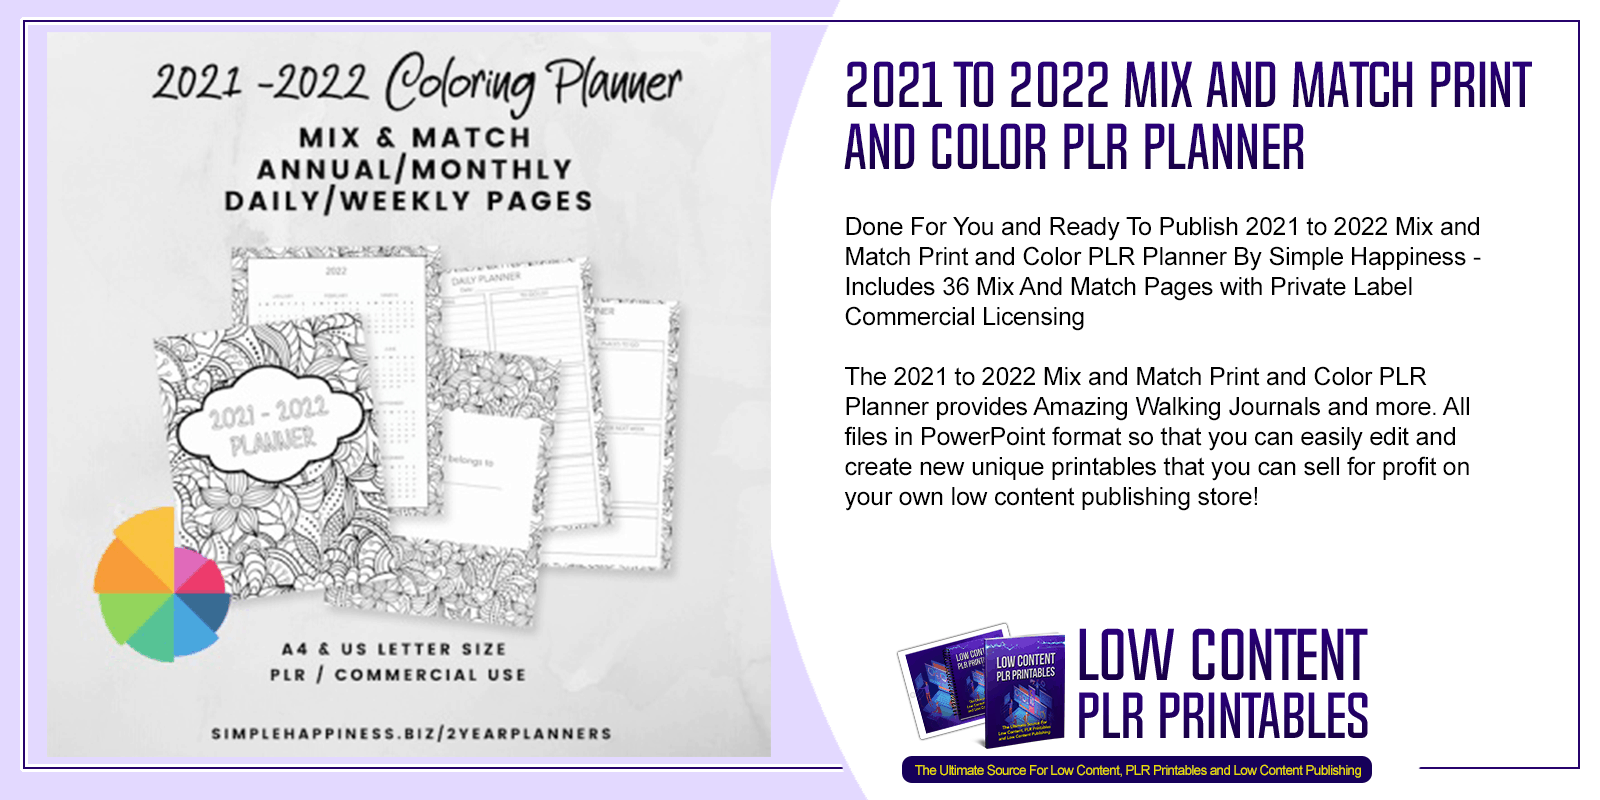 2021 to 2022 Mix and Match Print and Color PLR Planner